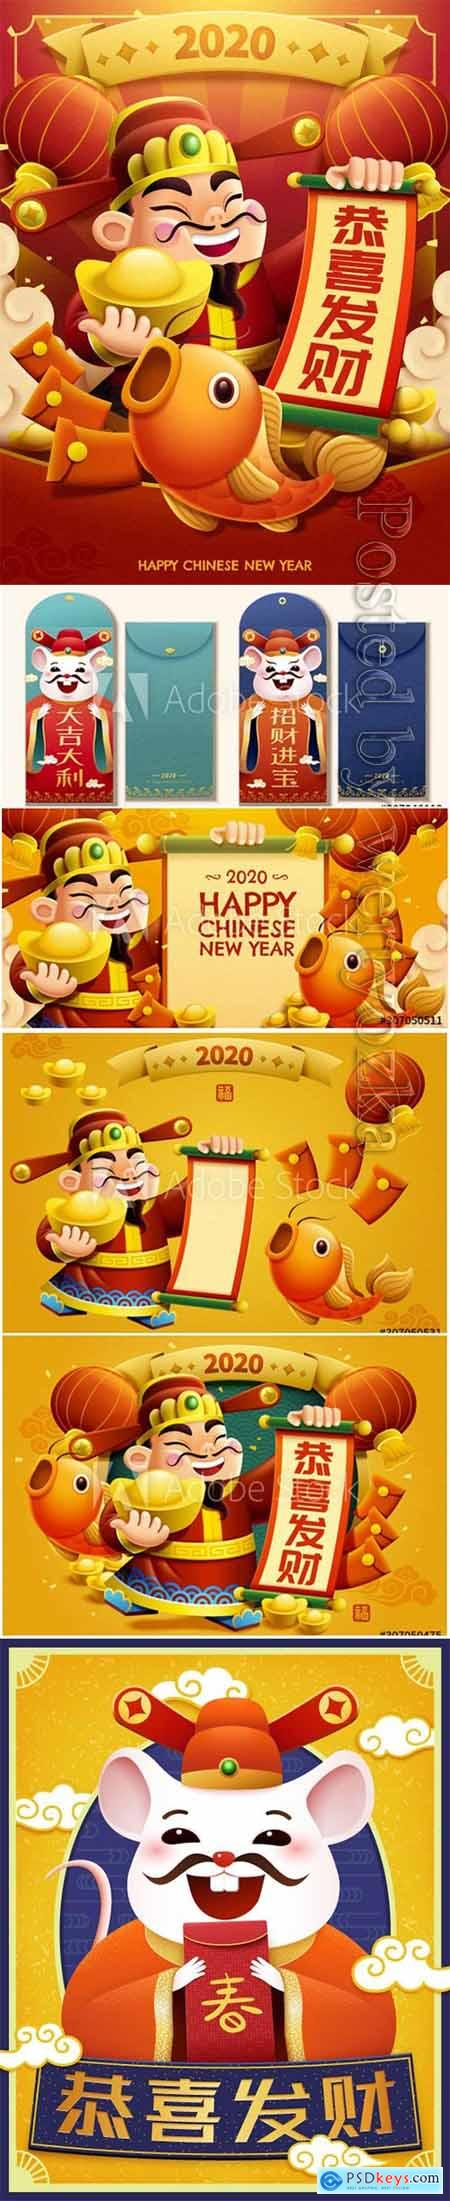 Blessing god of wealth for new year